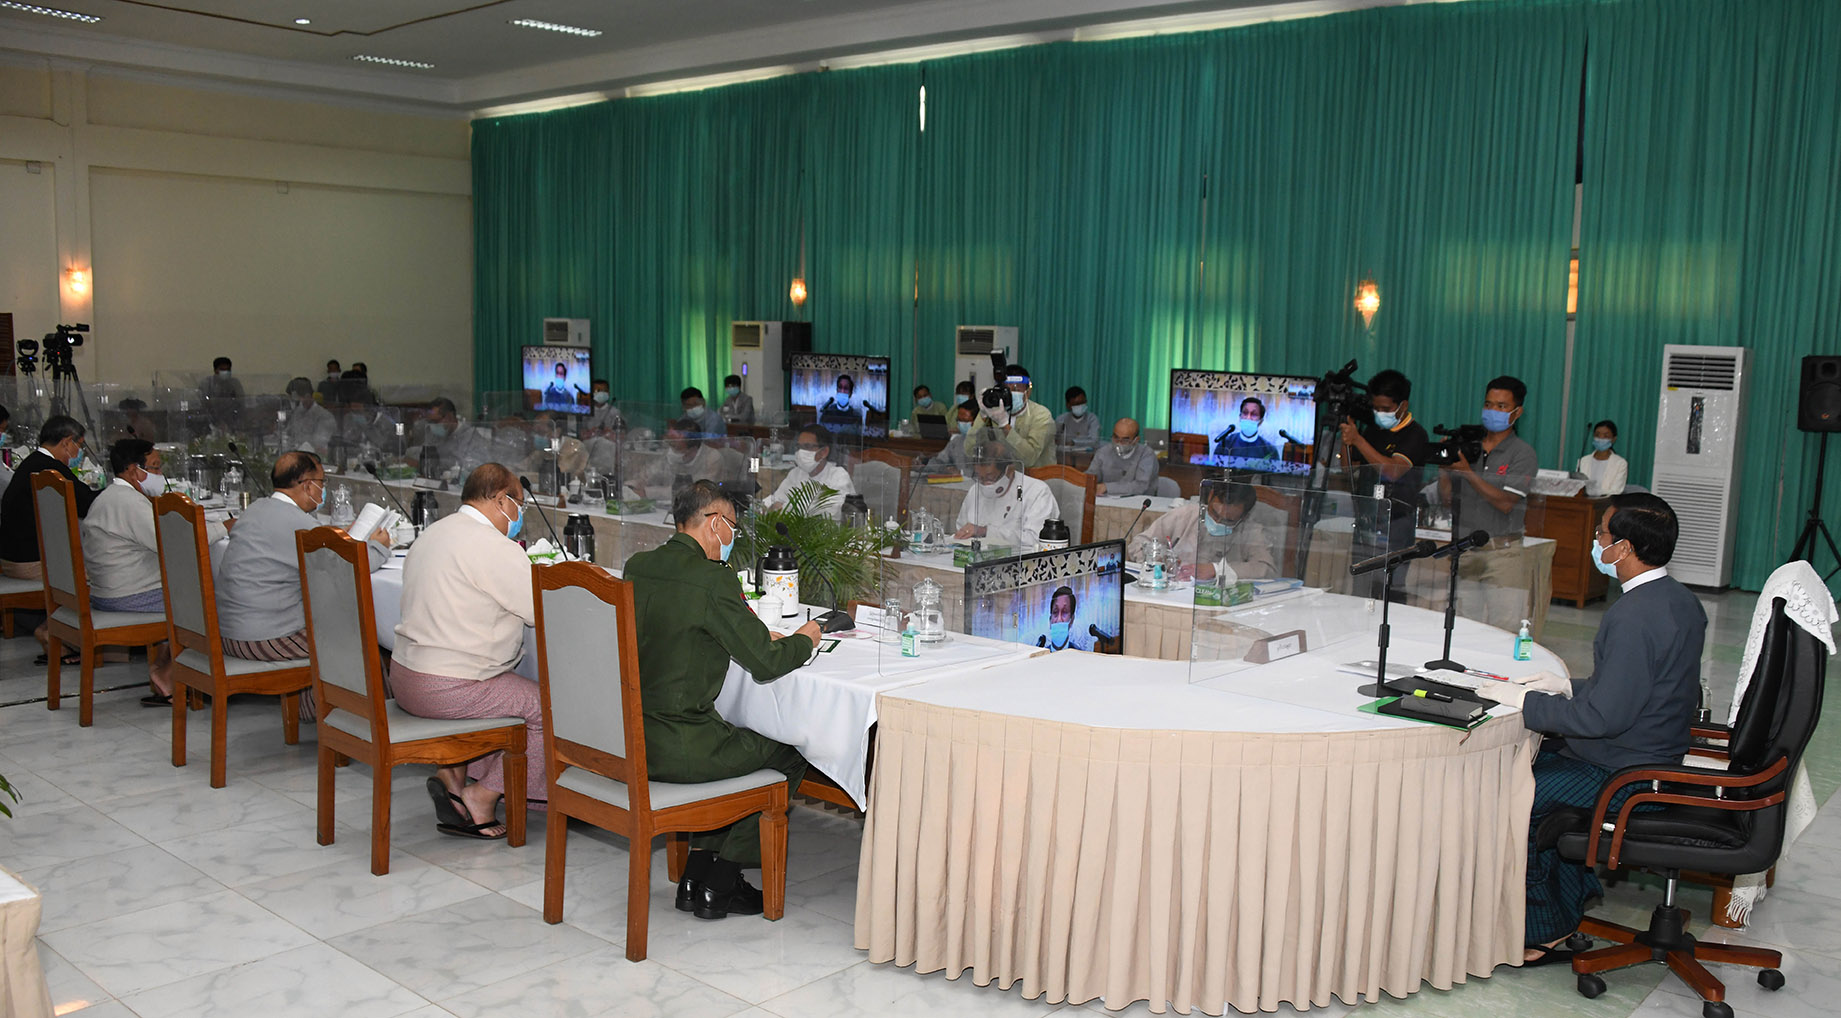 Vice President U Henry Van Thio presides over the 5th meeting of National Land Use Council at the Forest Department of the Ministry of Natural Resources and Environmental Conservation in Nay Pyi Taw on 11 August 2020.Photo: MNA